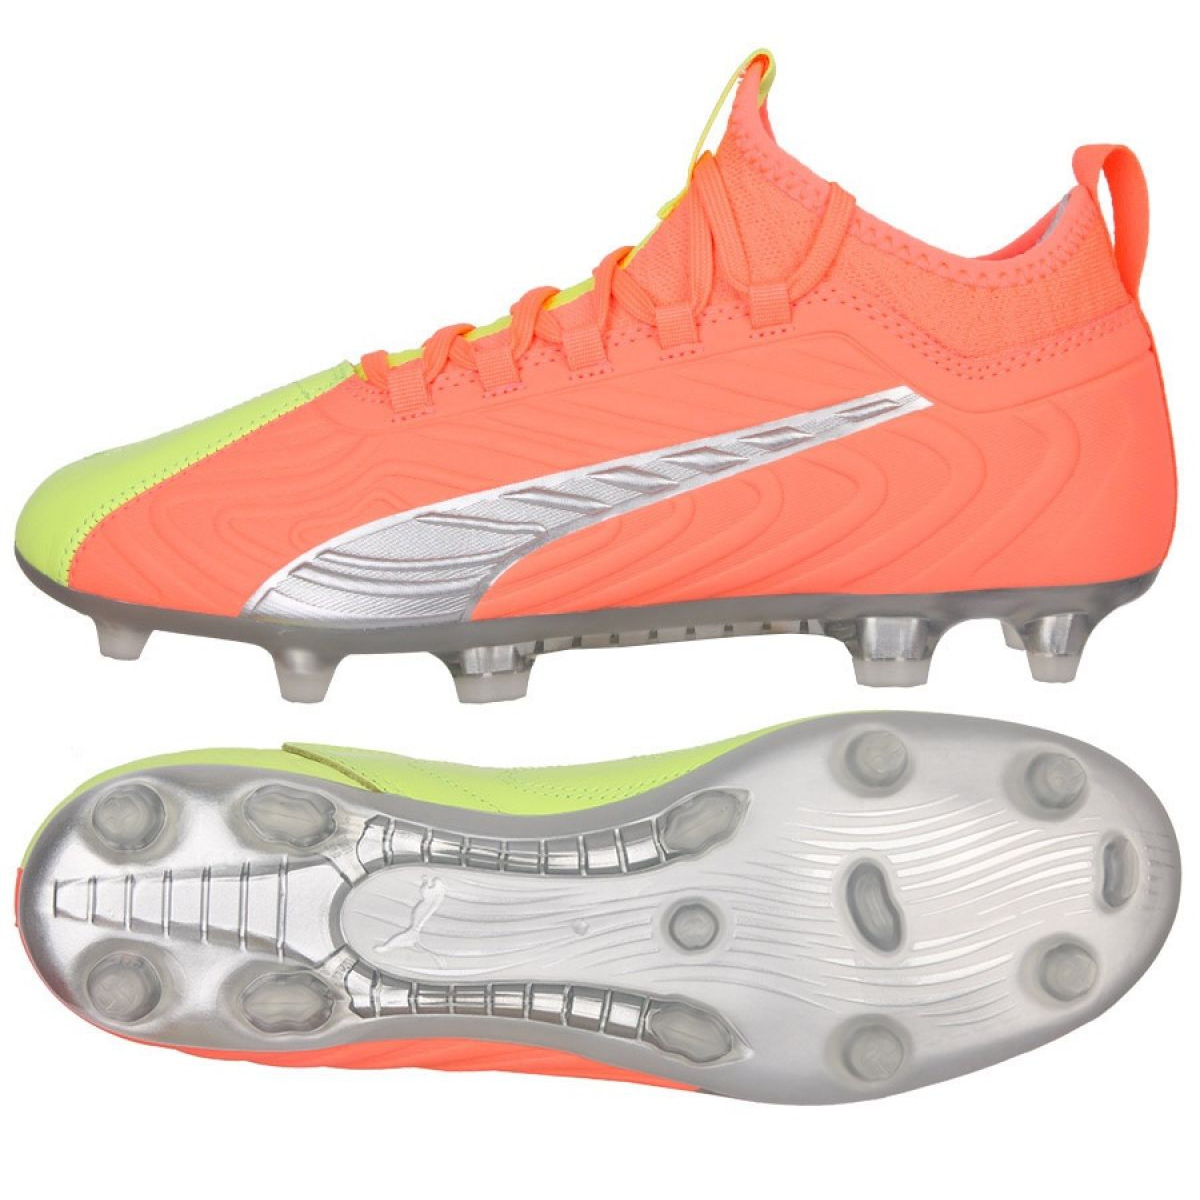 Details about Puma One 20.3 Osg FG / AG M 105961 01 football boots red,  orange orange